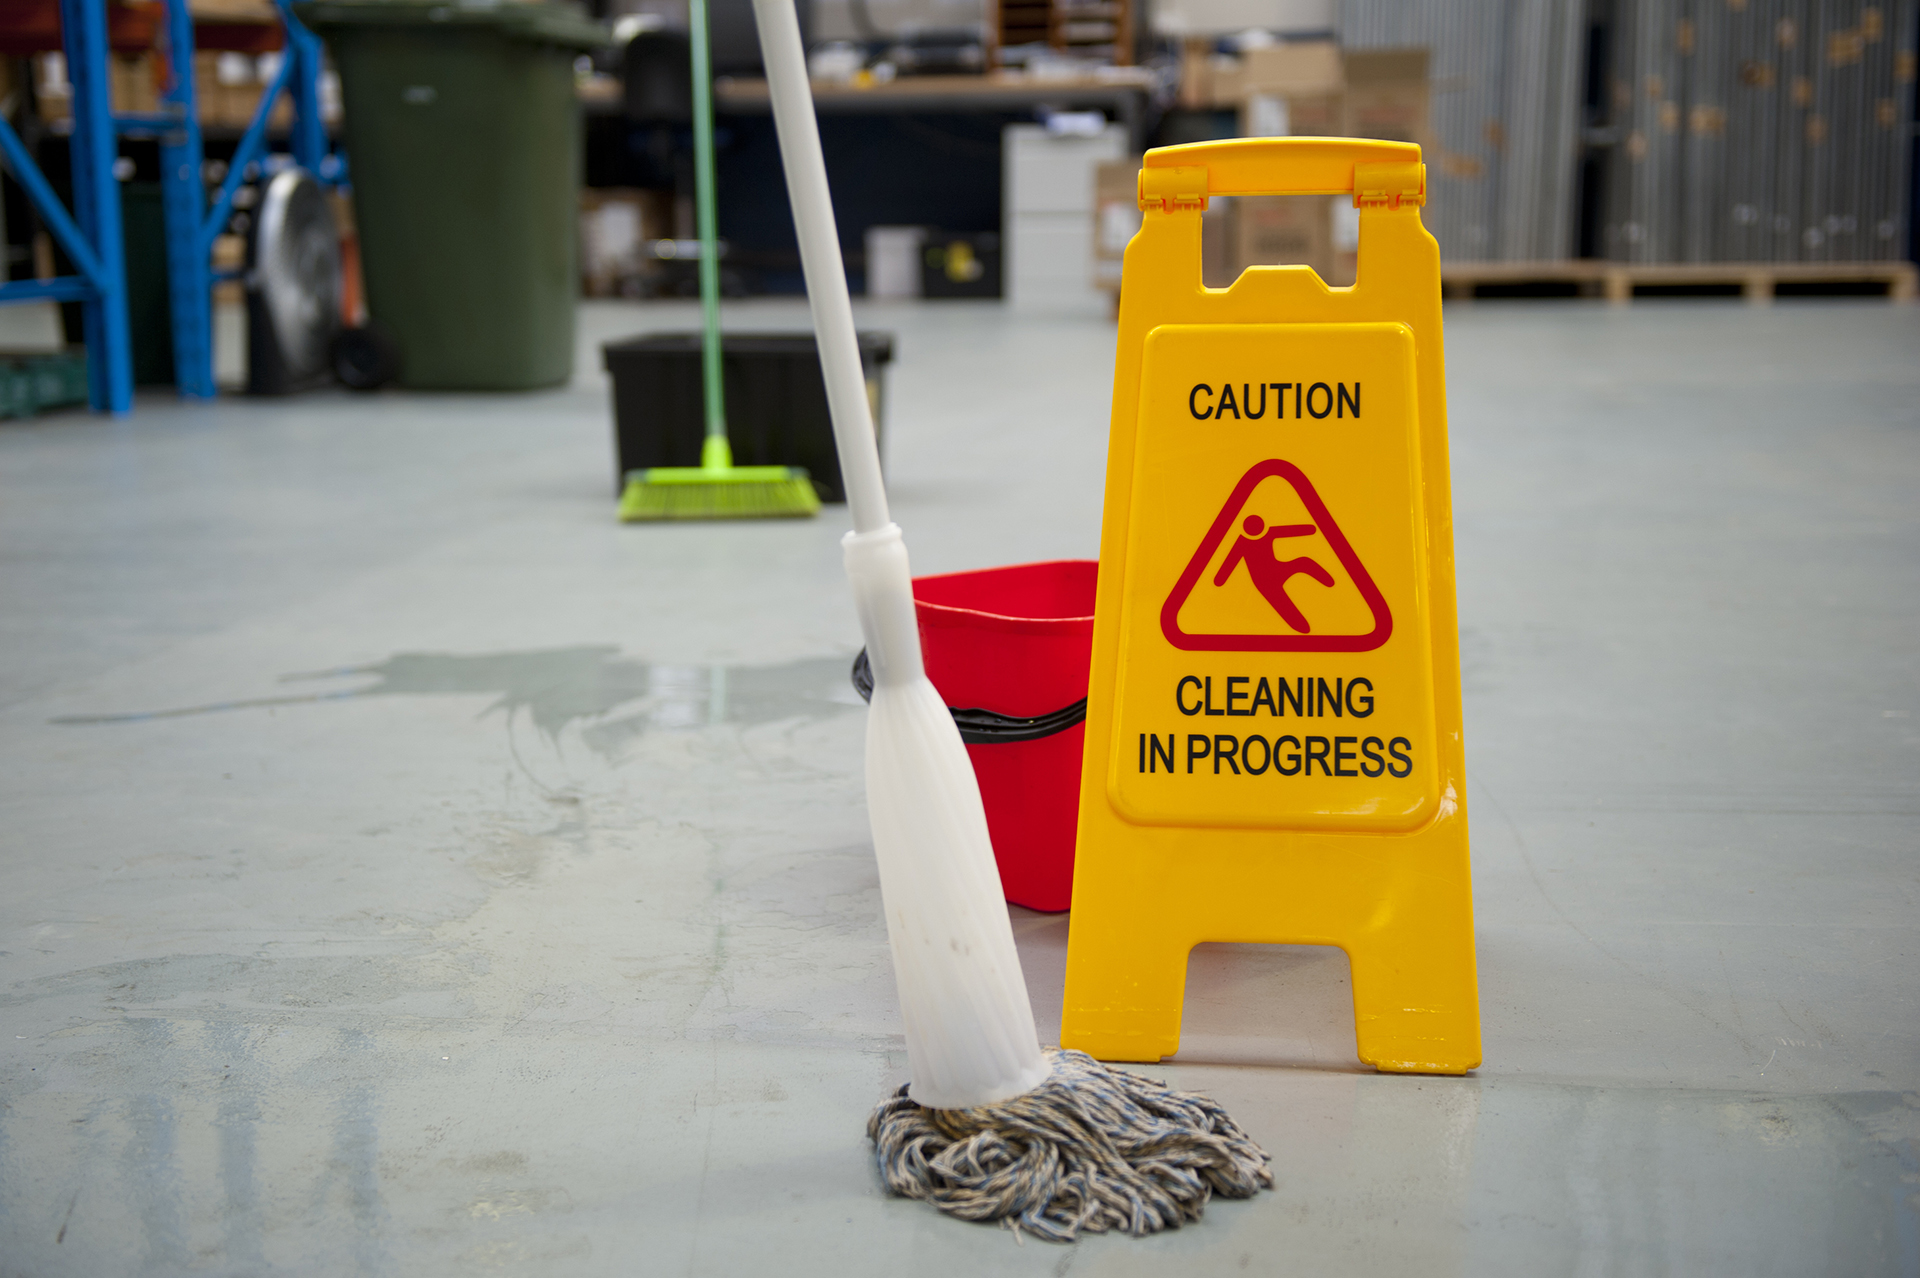 Warehouse Housekeeping to Improve Safety | The Safegard